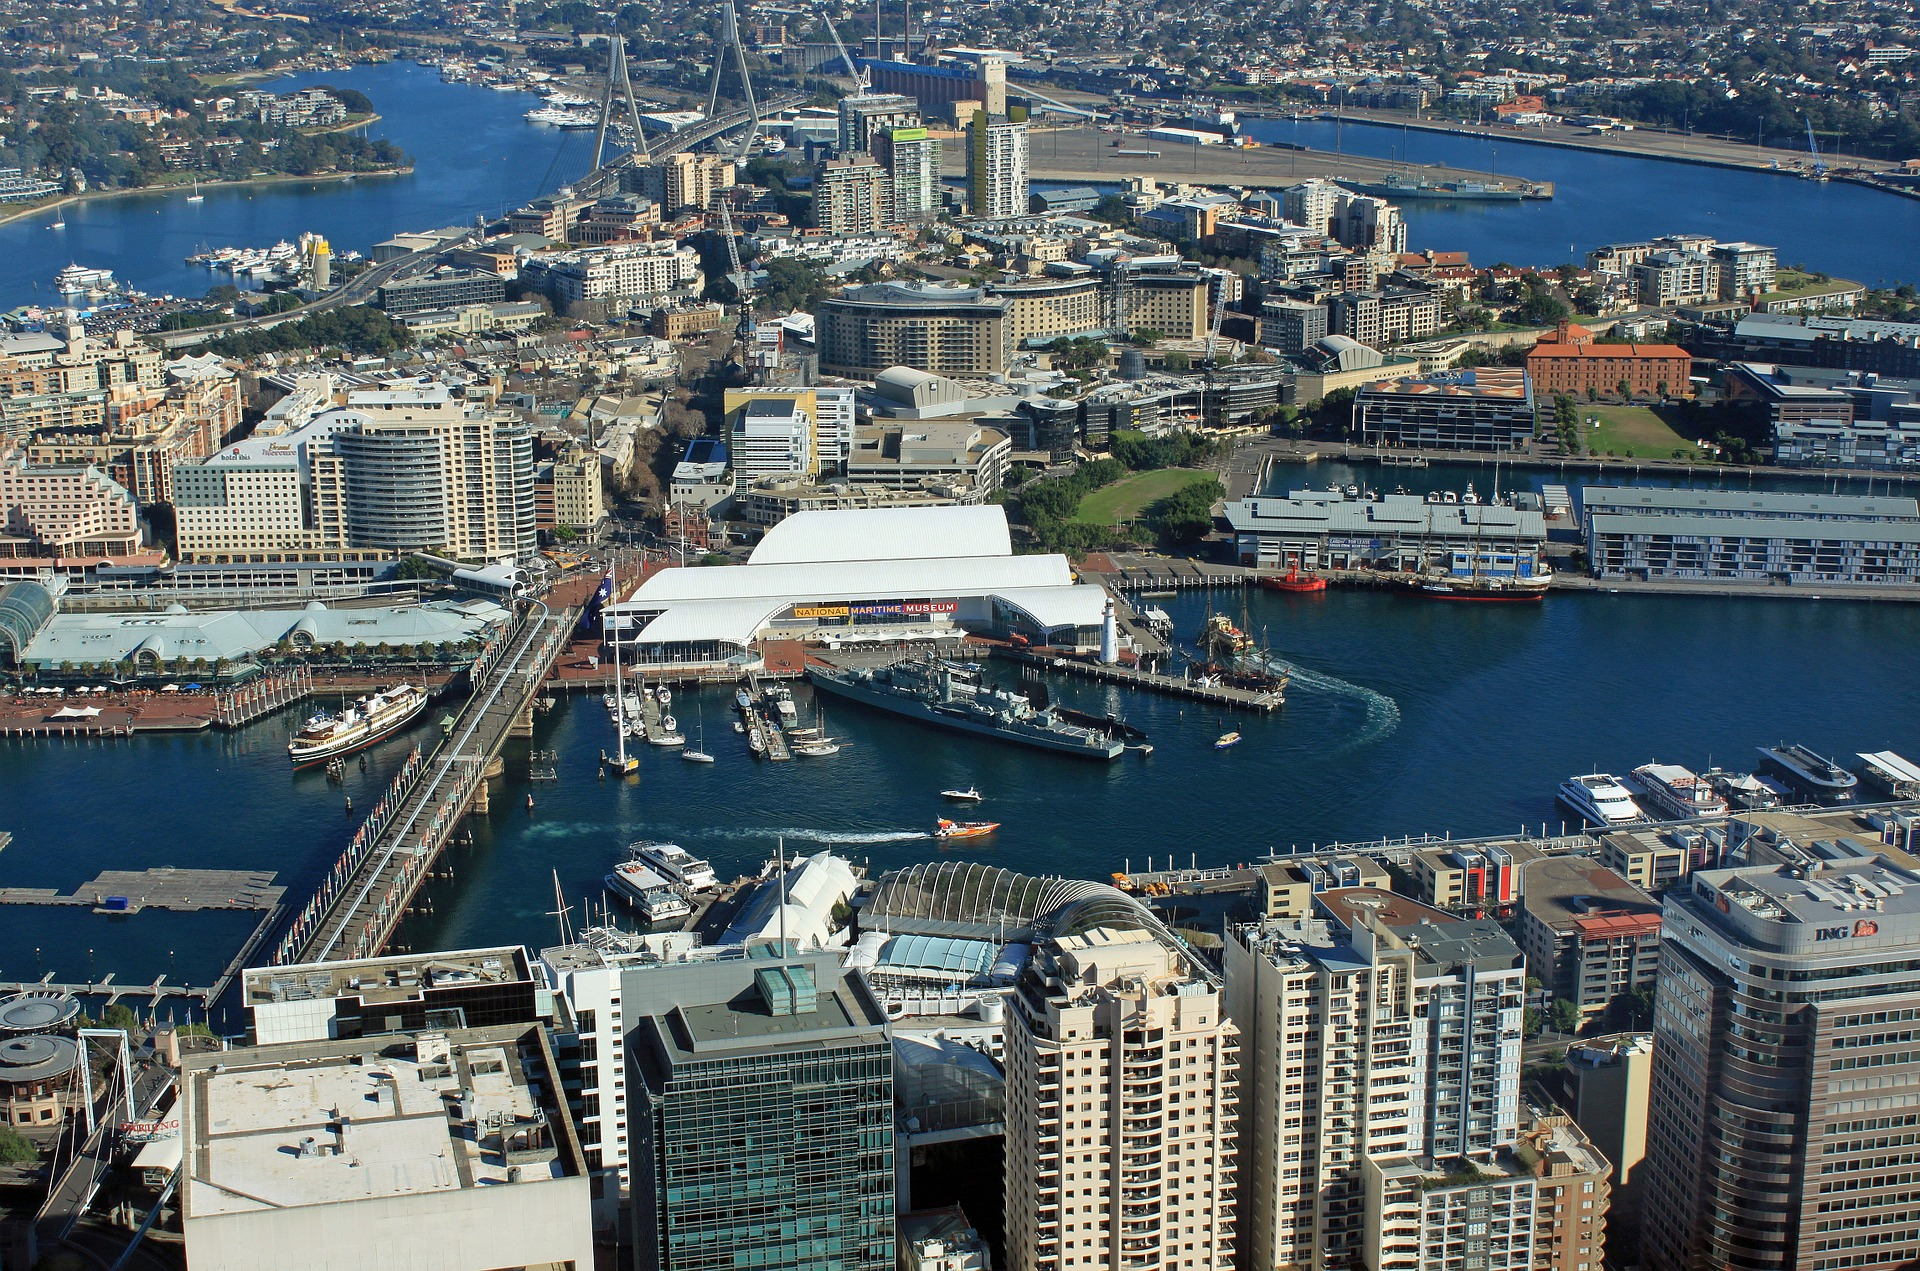 Aerial view of Darling Harbour, Sydney, Australia